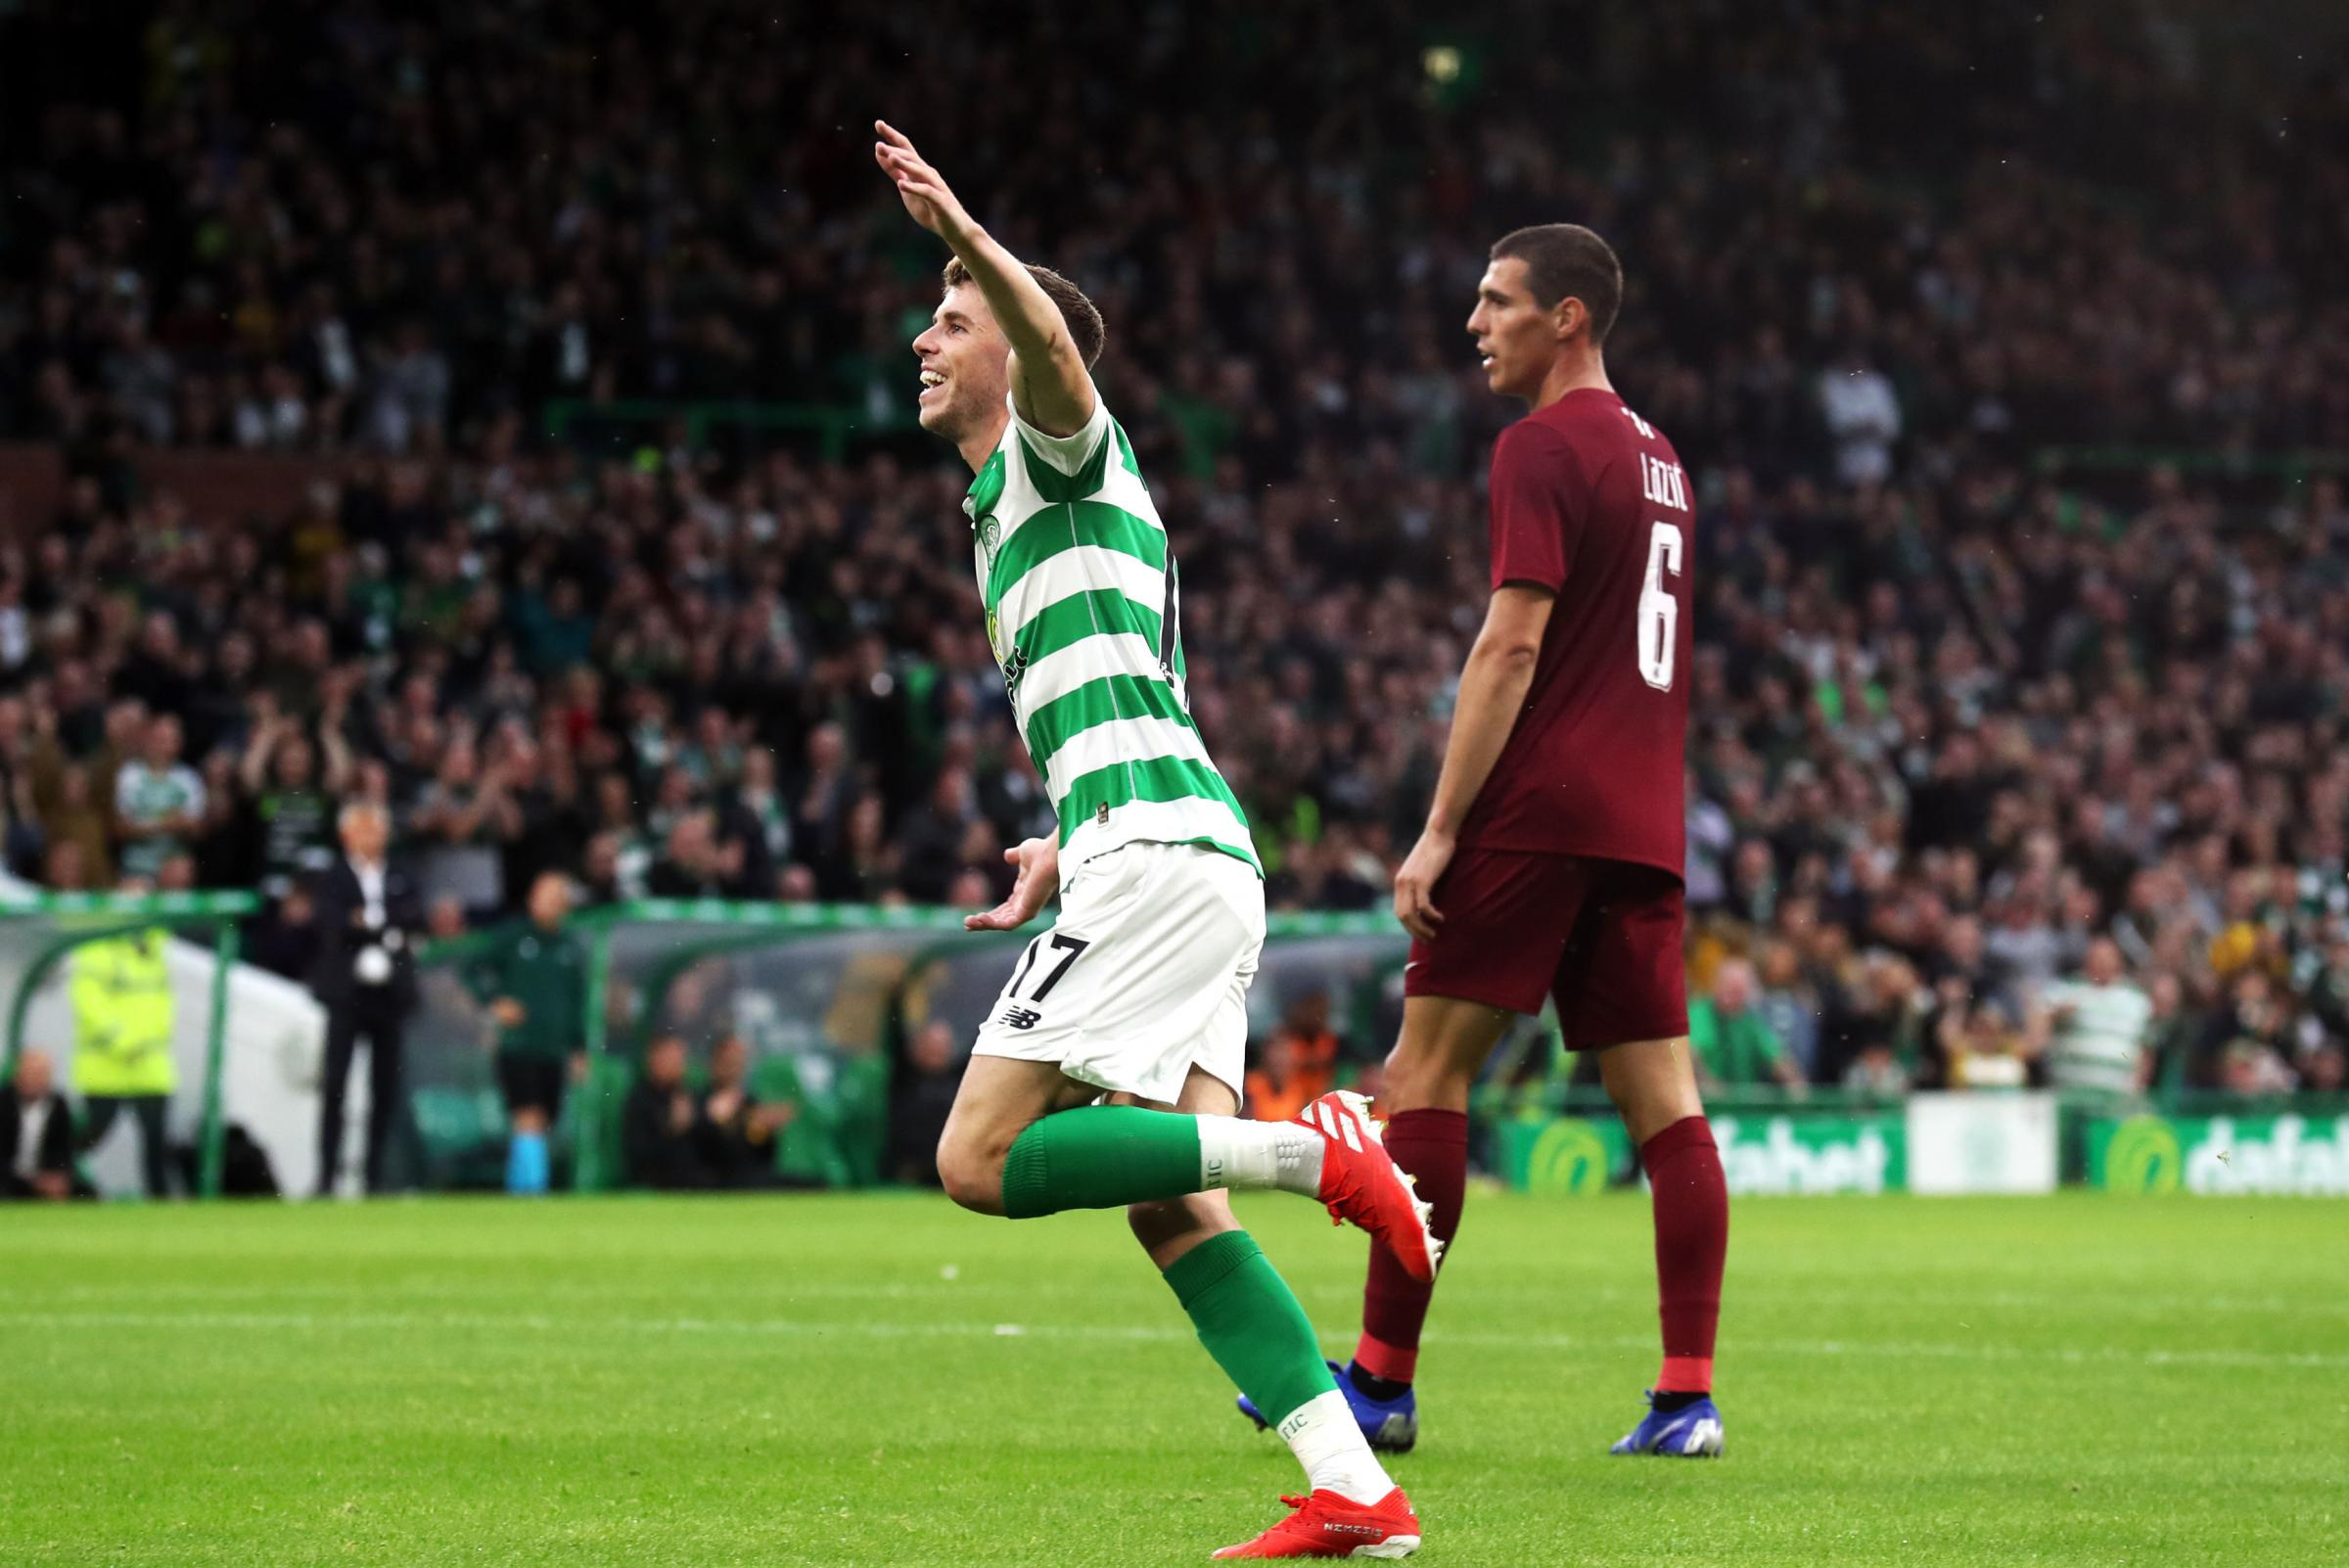 Celtic 2 Sarajevo 1: Five things we learned from Celtic's victory